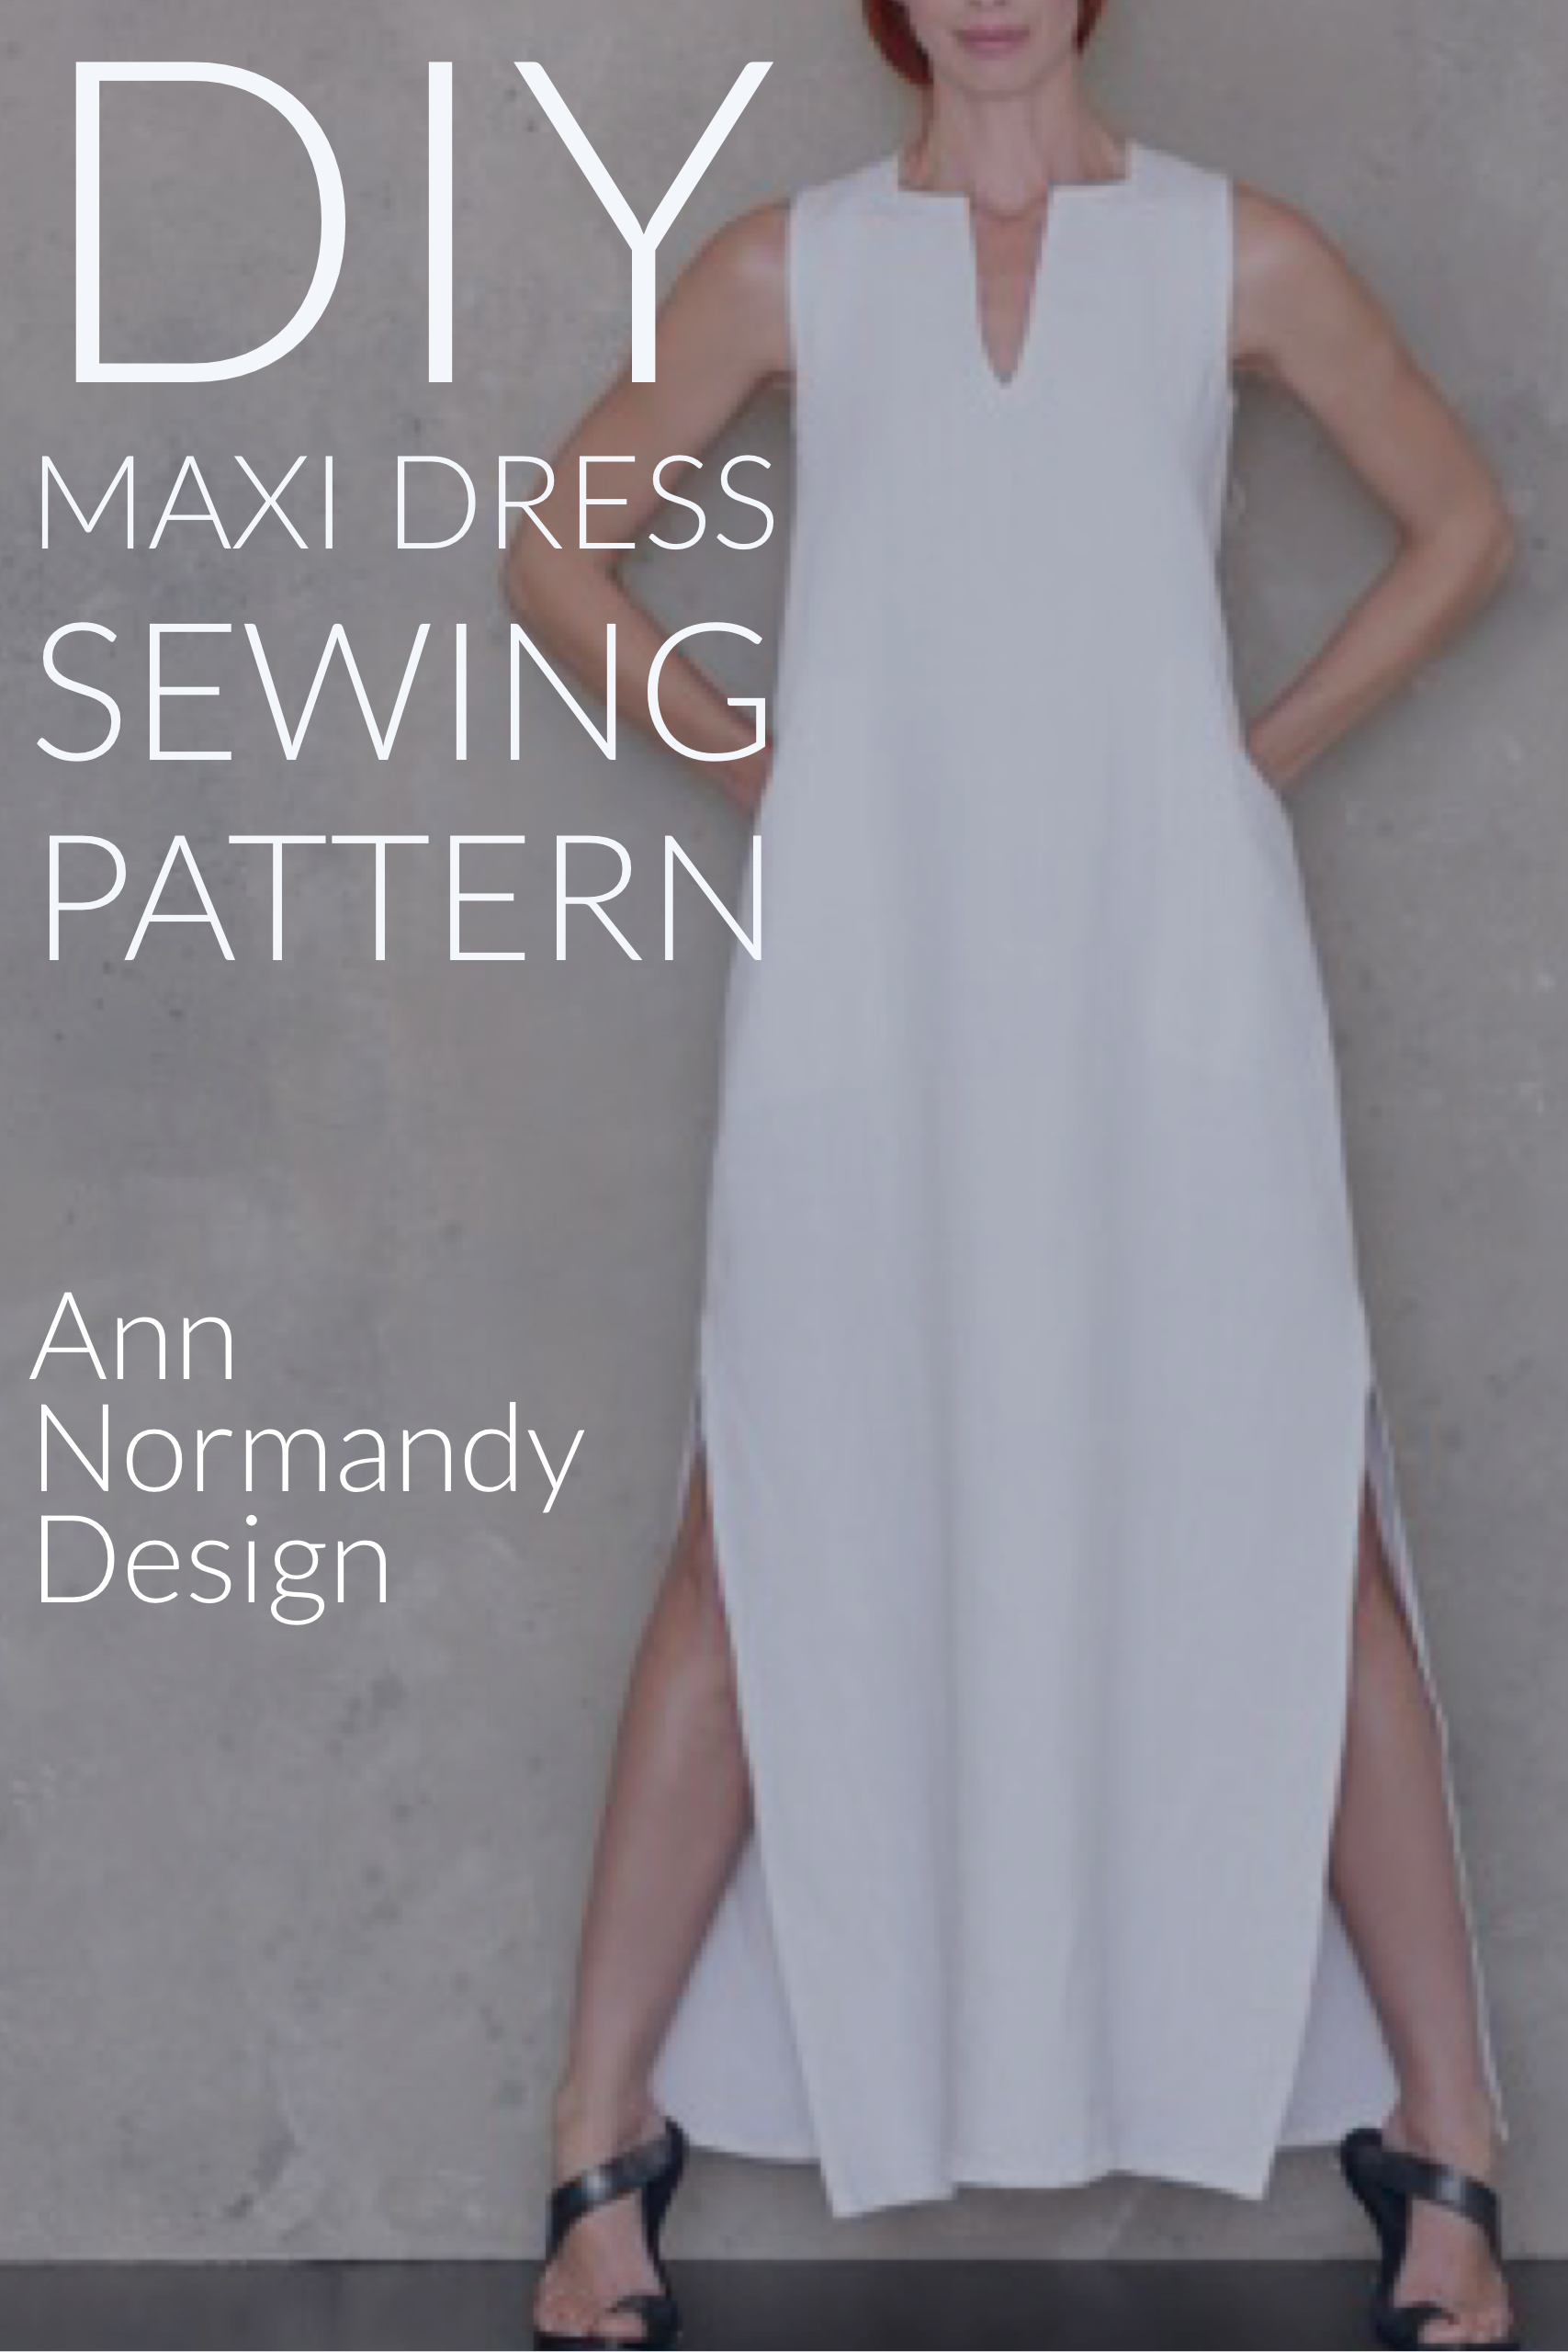 9bb67beaaec3 Full Length Dress, Maxi Dress PDF sewing pattern. Couture quality, long  dress pattern with timeless caftan style. With square and v neck, pockets  and side ...